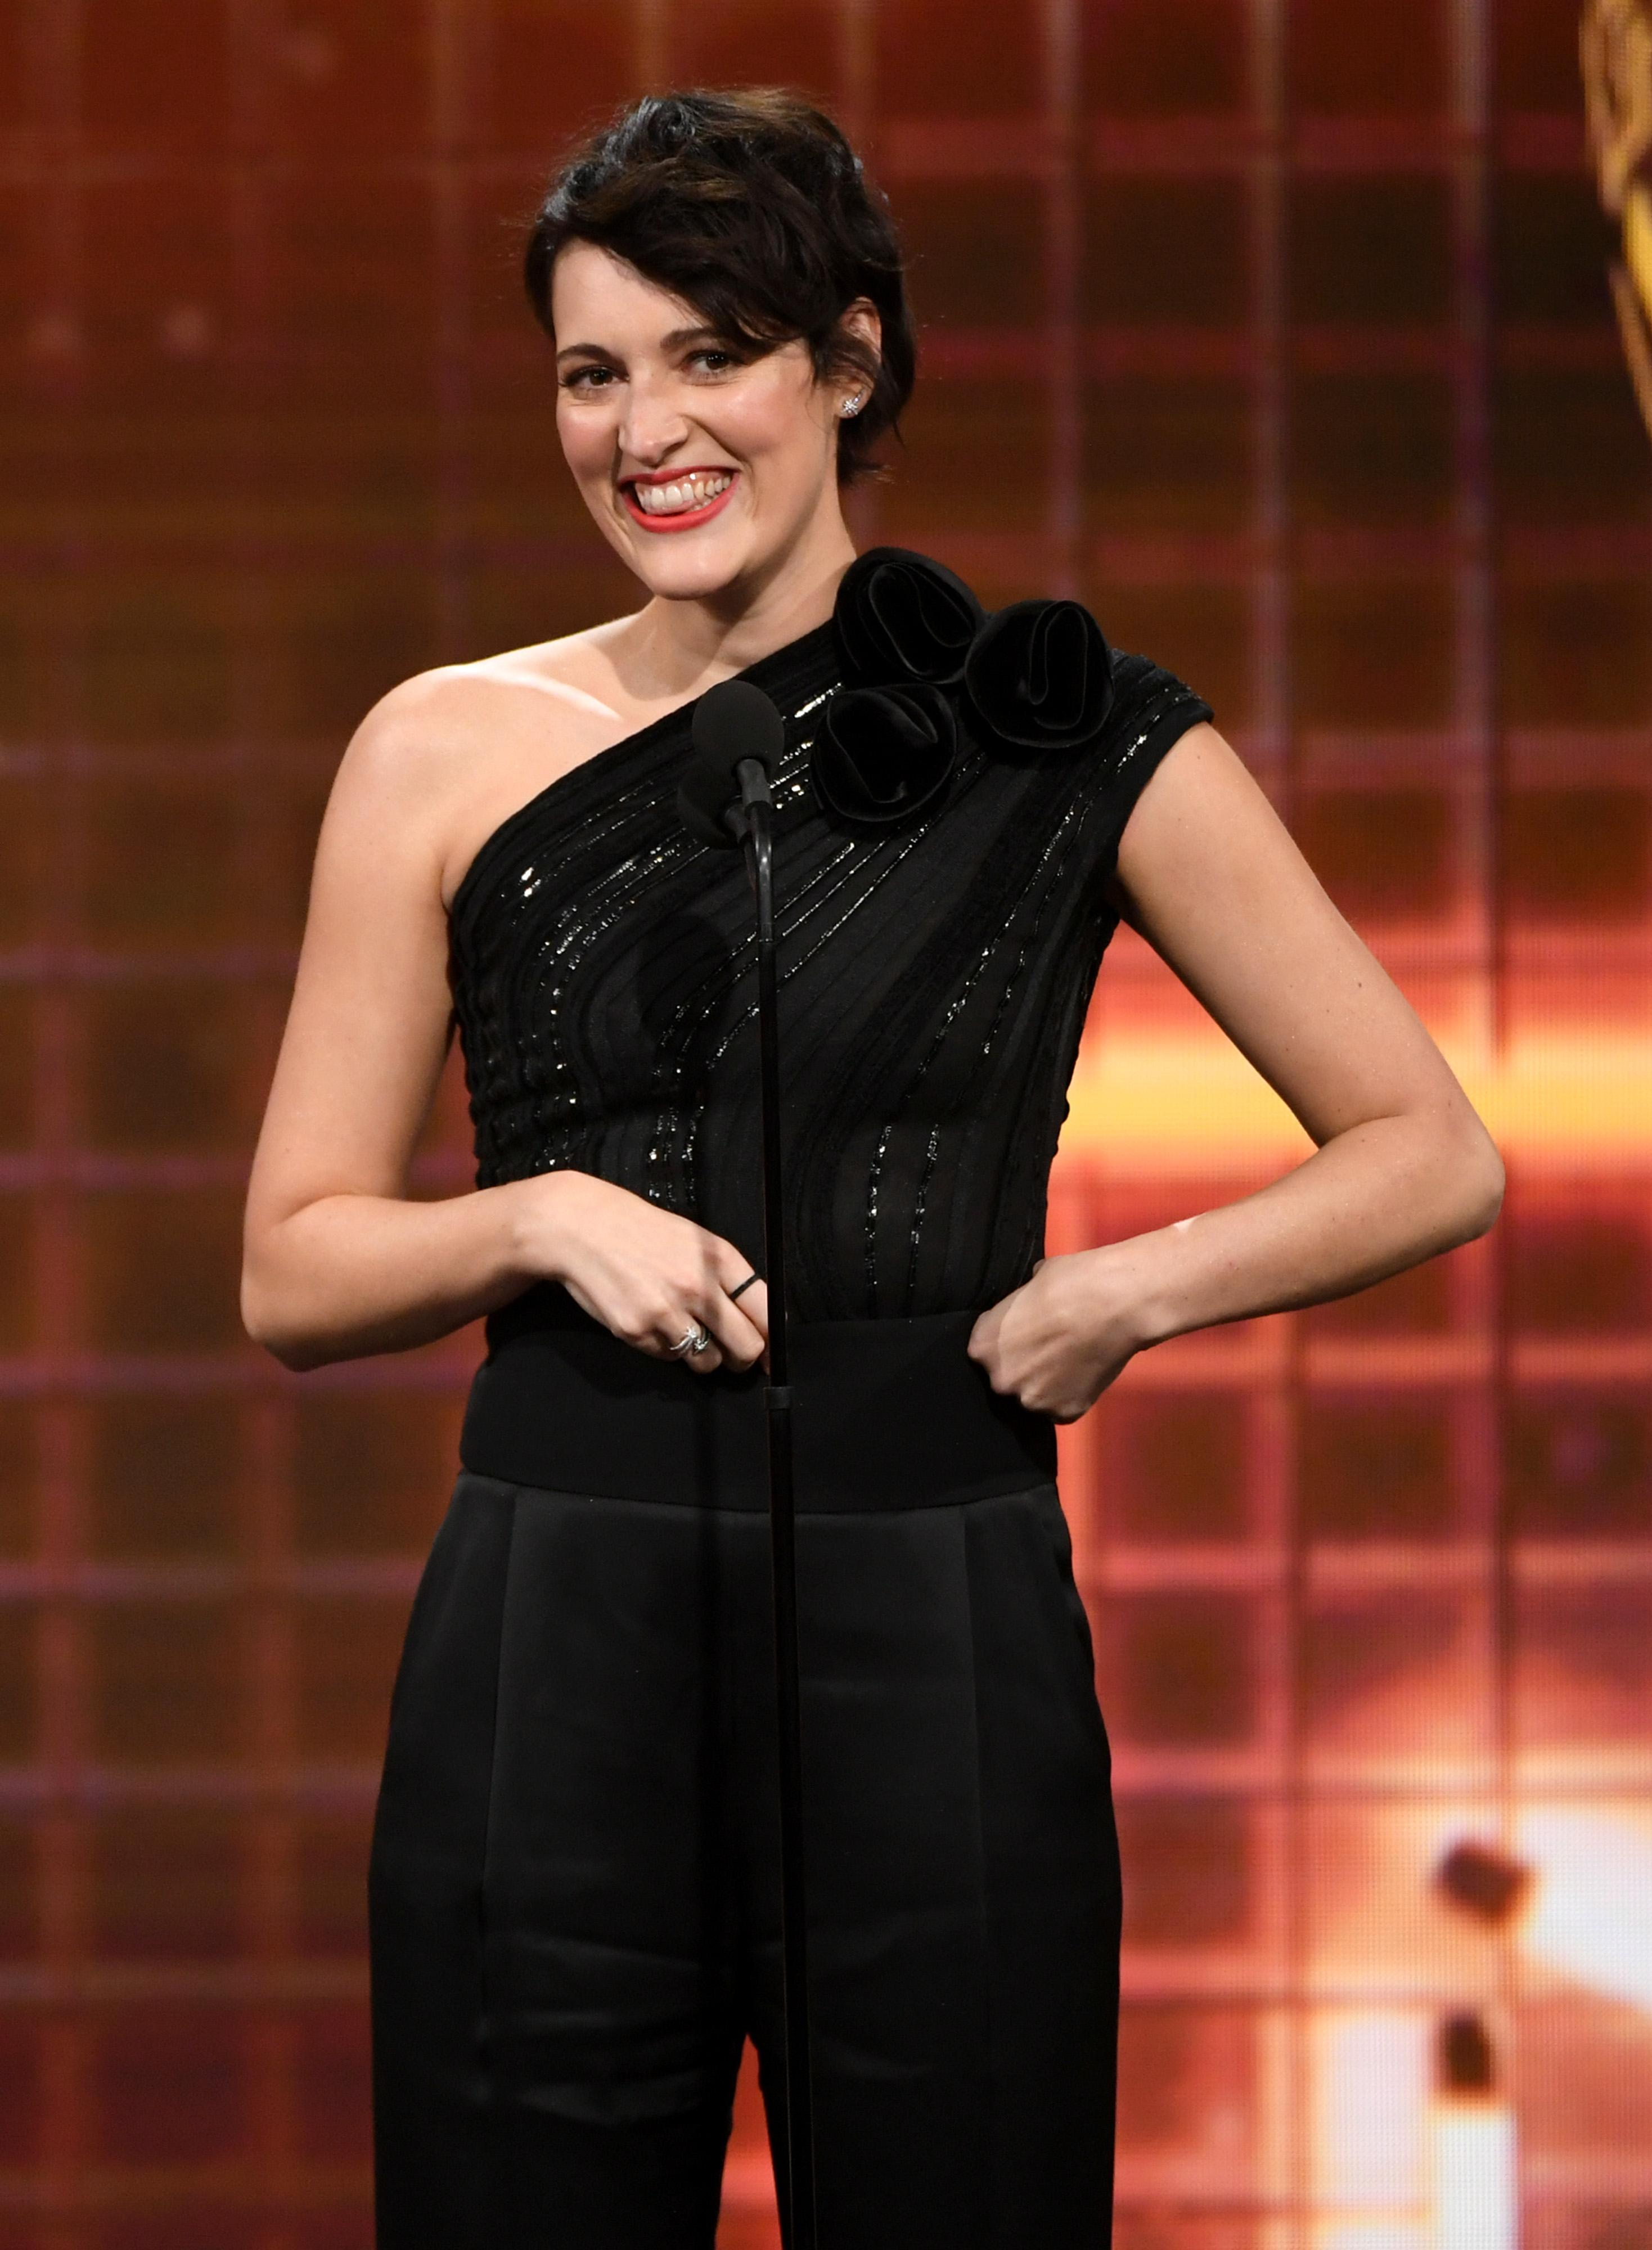 Phoebe Waller-Bridge shoots down claims she was hired to help write 'No Time to Die' because she's a woman